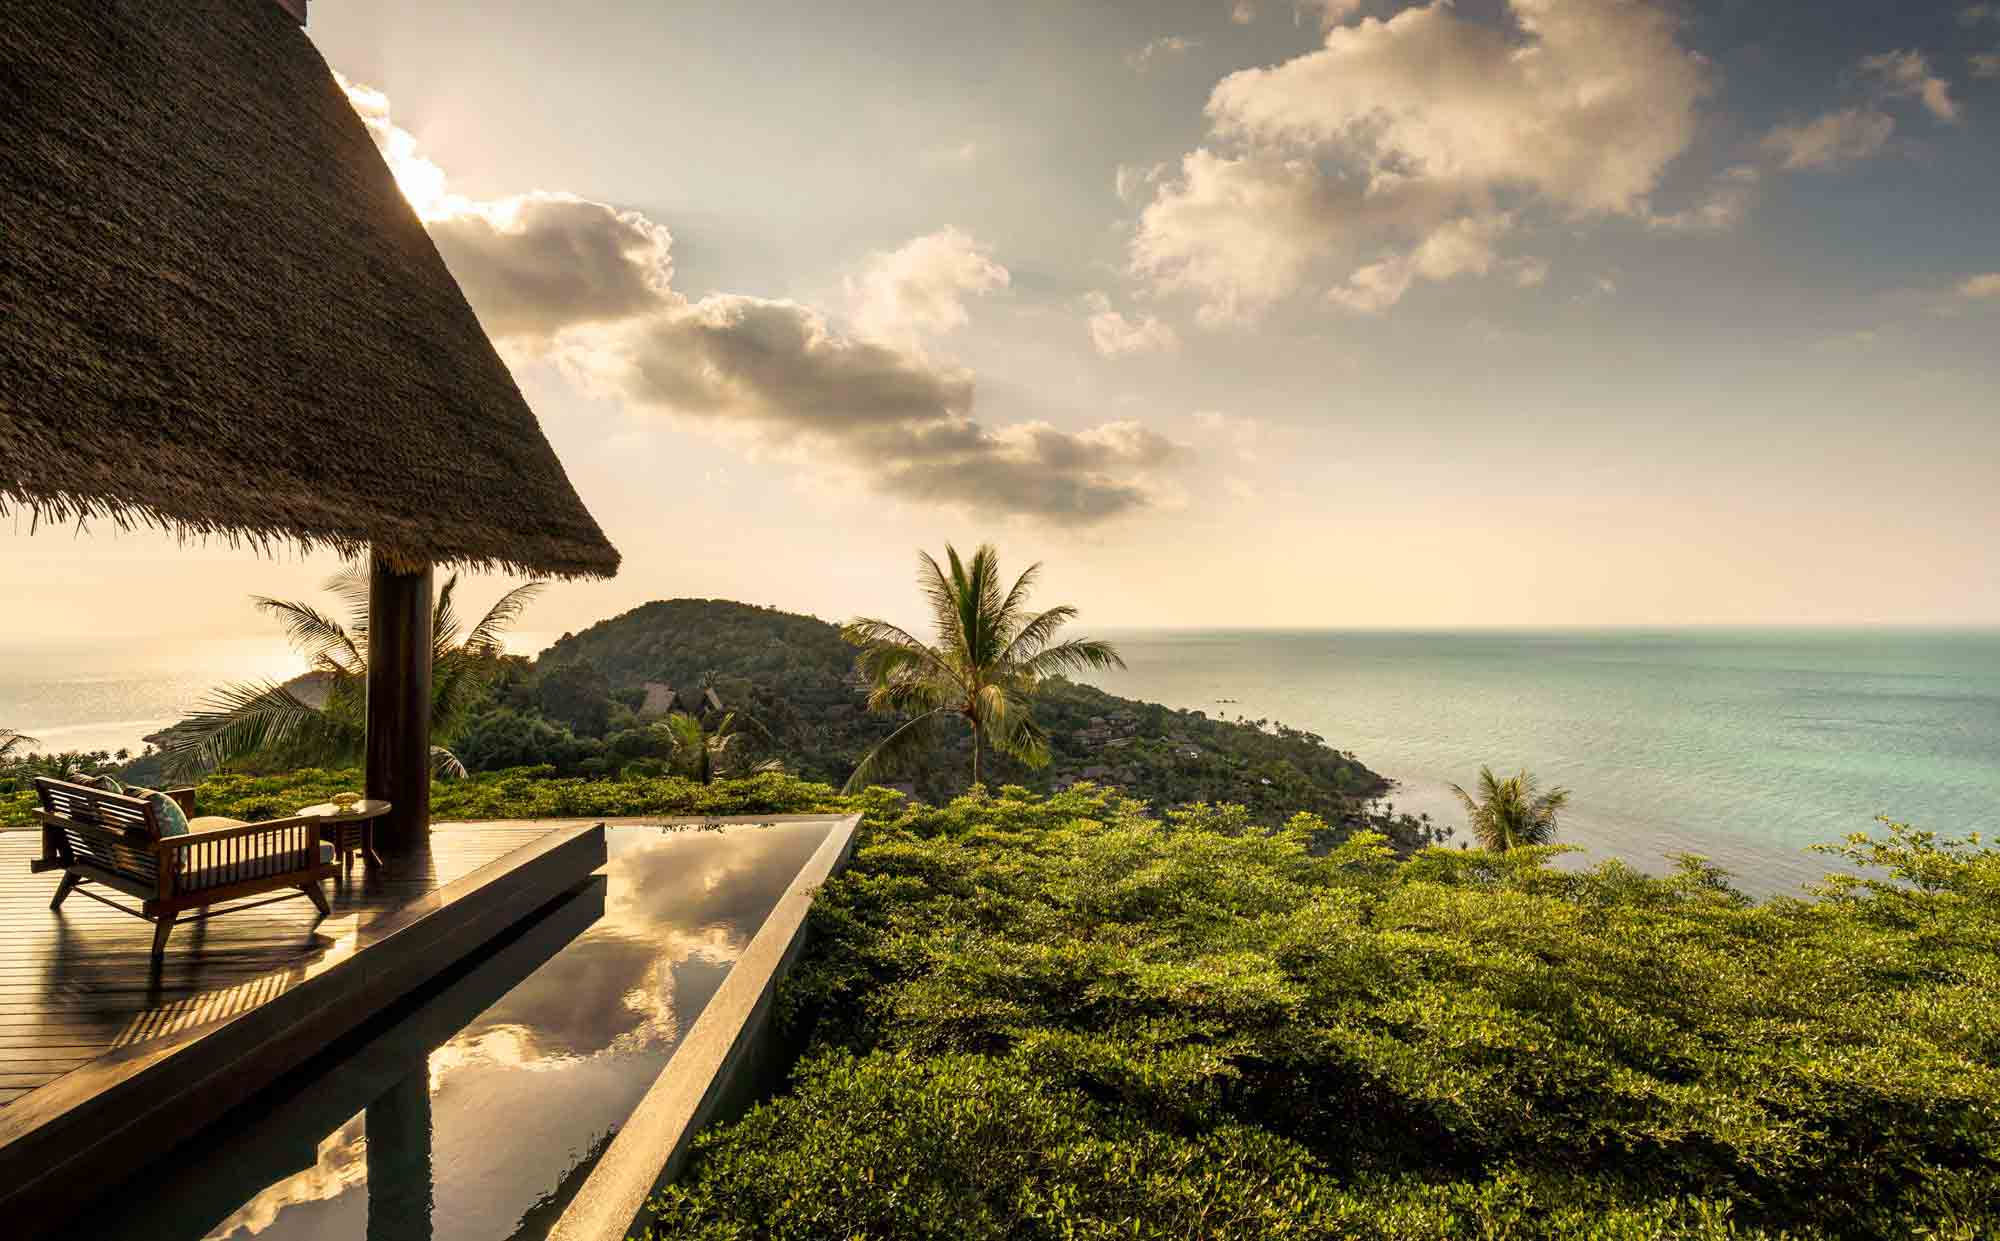 Four Seasons Koh Samui - onefinemoment_Asien_Thailand_Four-Seasons-Koh-Samui_5.jpg